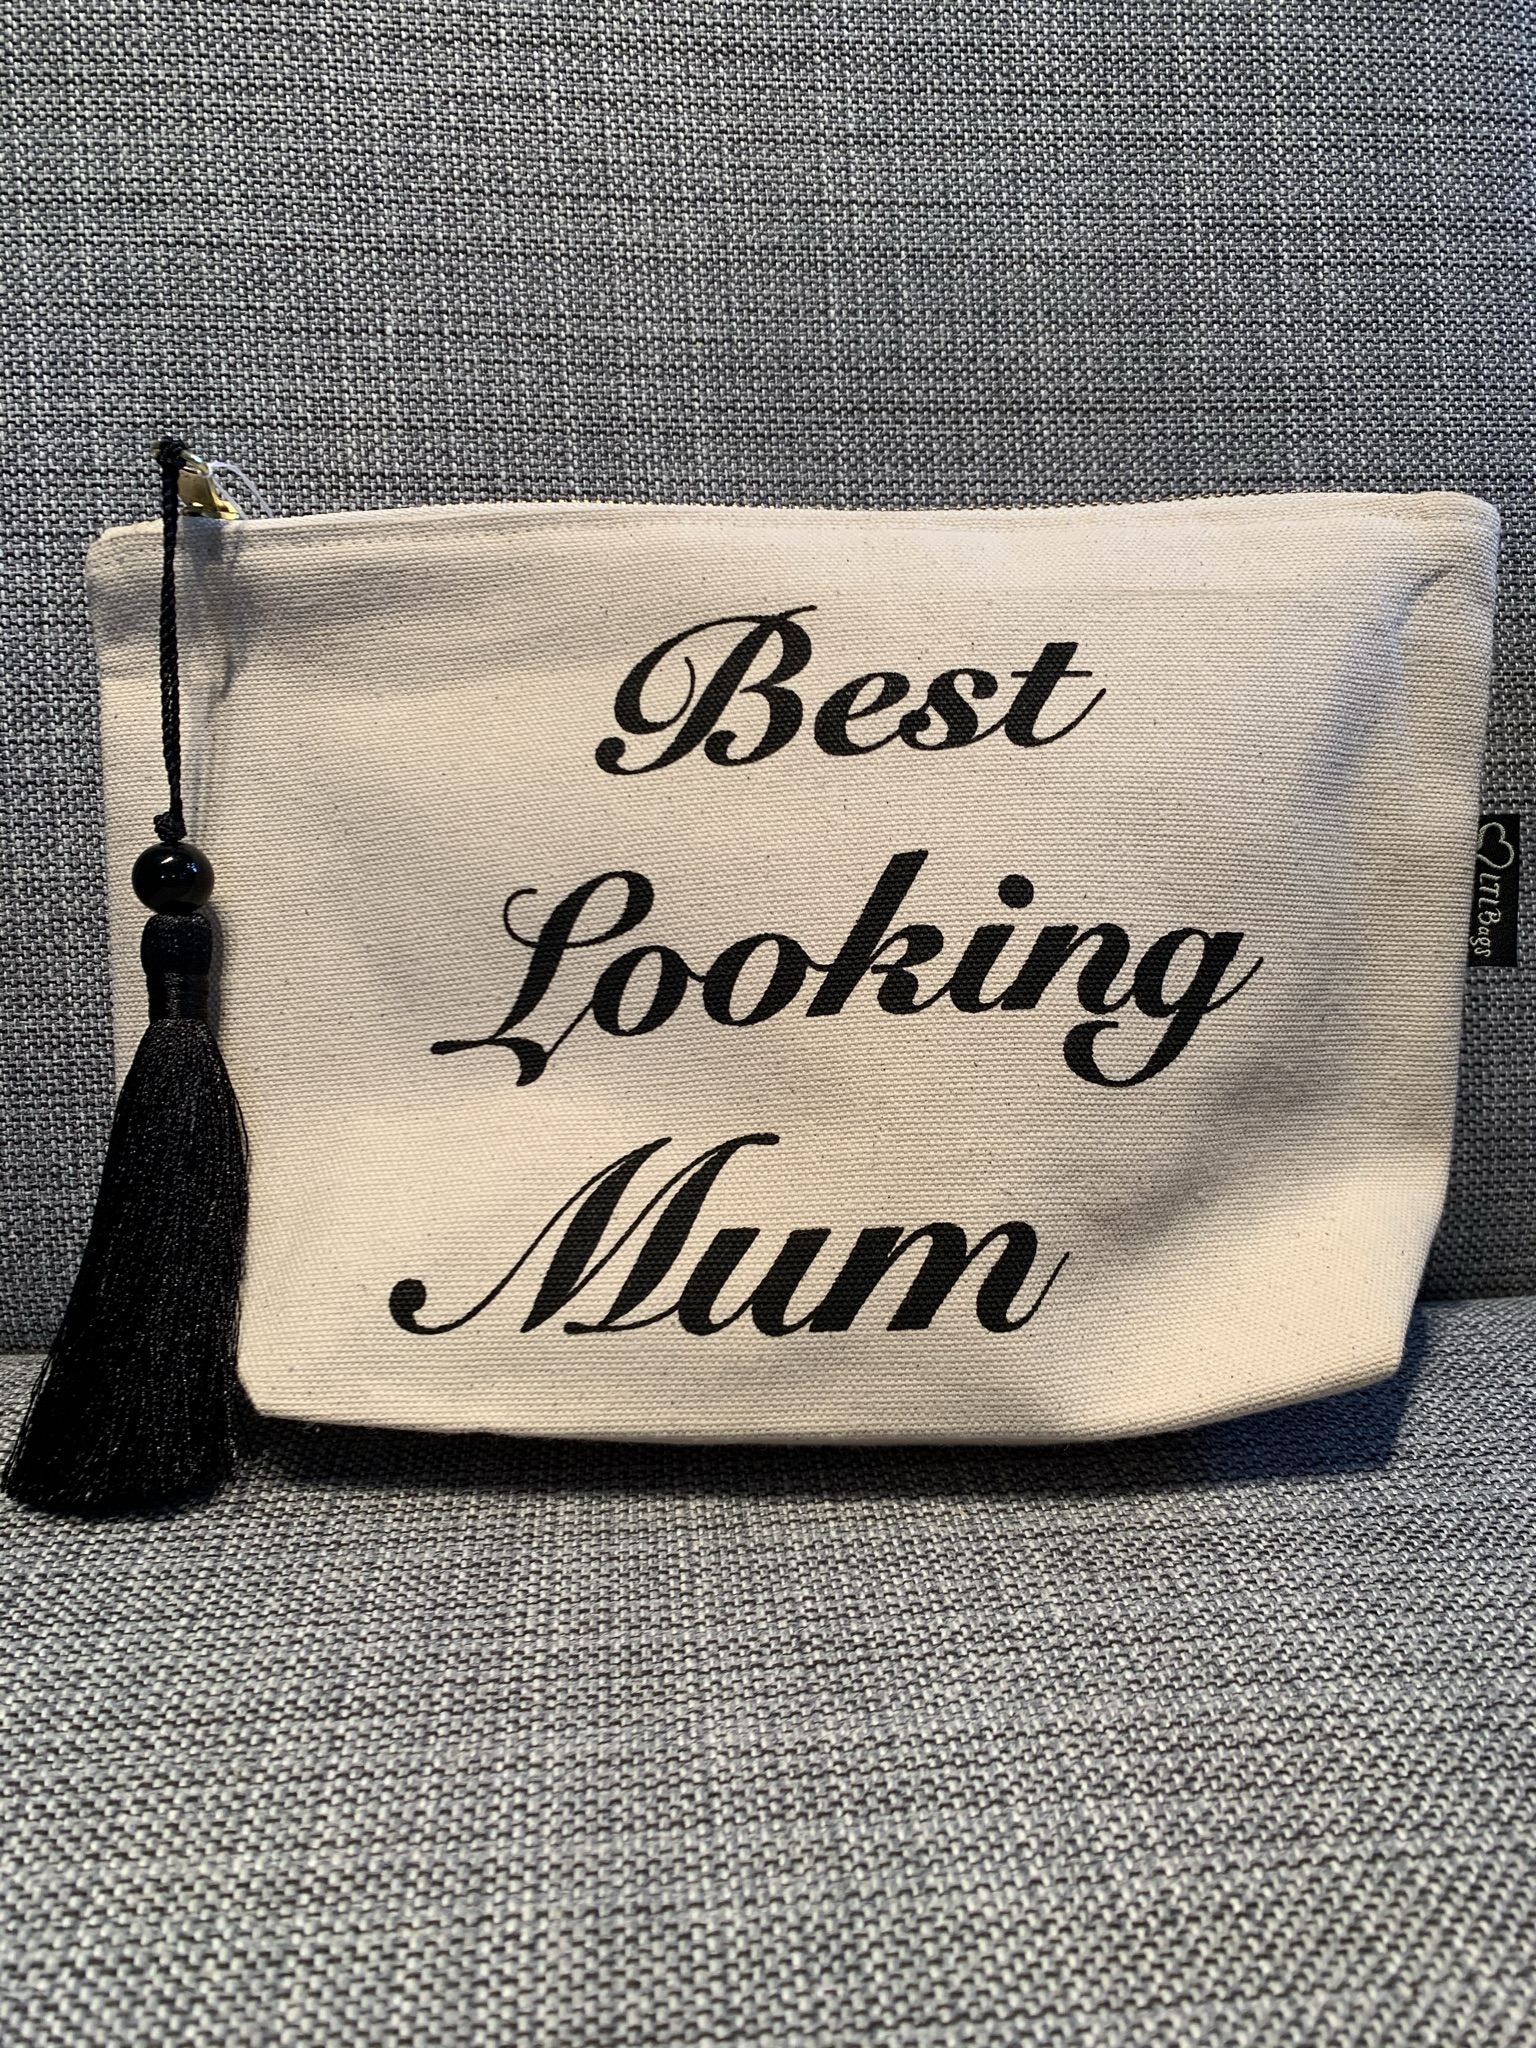 'Mum' Make Up Bags - 3 Designs Available